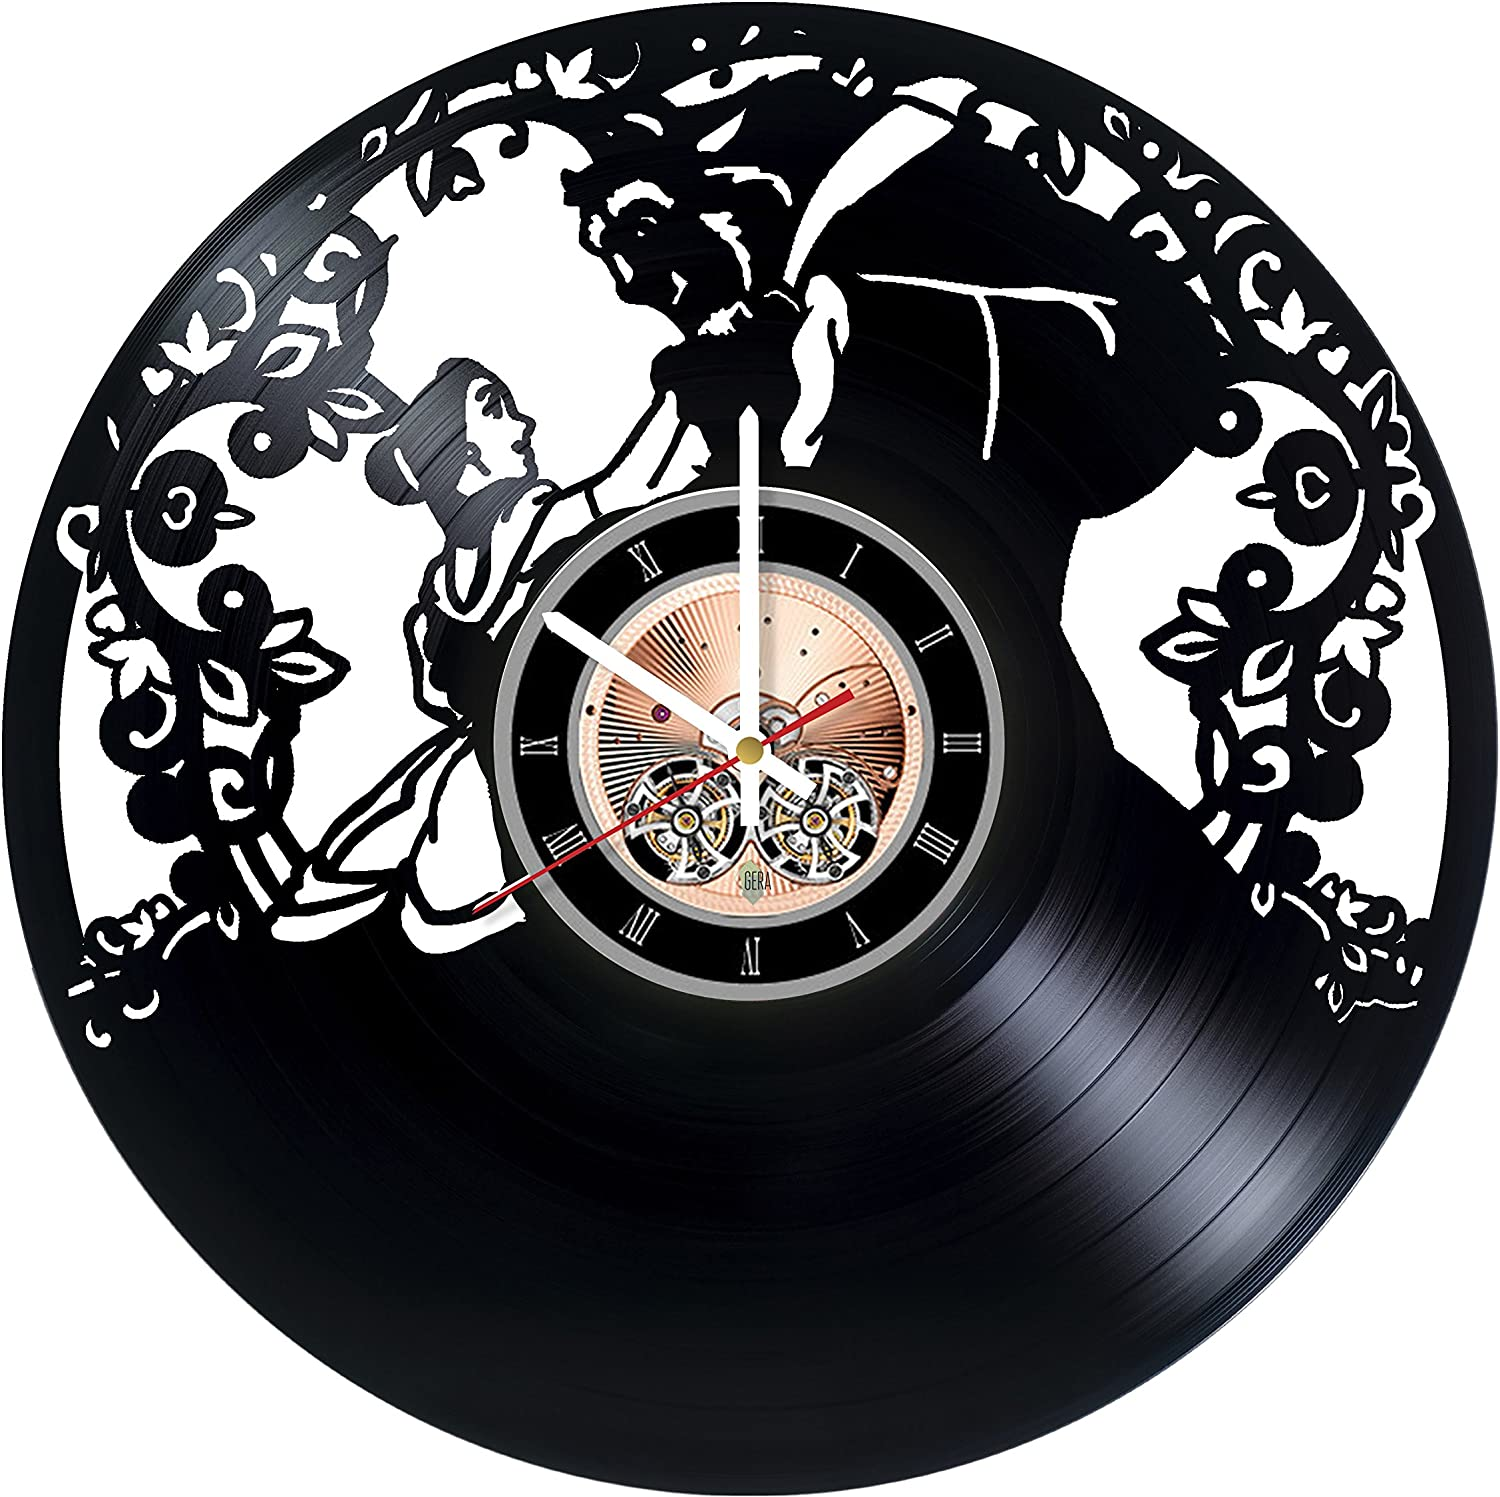 Beauty and The Beast Love Vinyl Record Wall Clock - Kids Room Wall Decor - Gift Ideas for Children, Teens, sster -Fantasy Story Unique Art Design